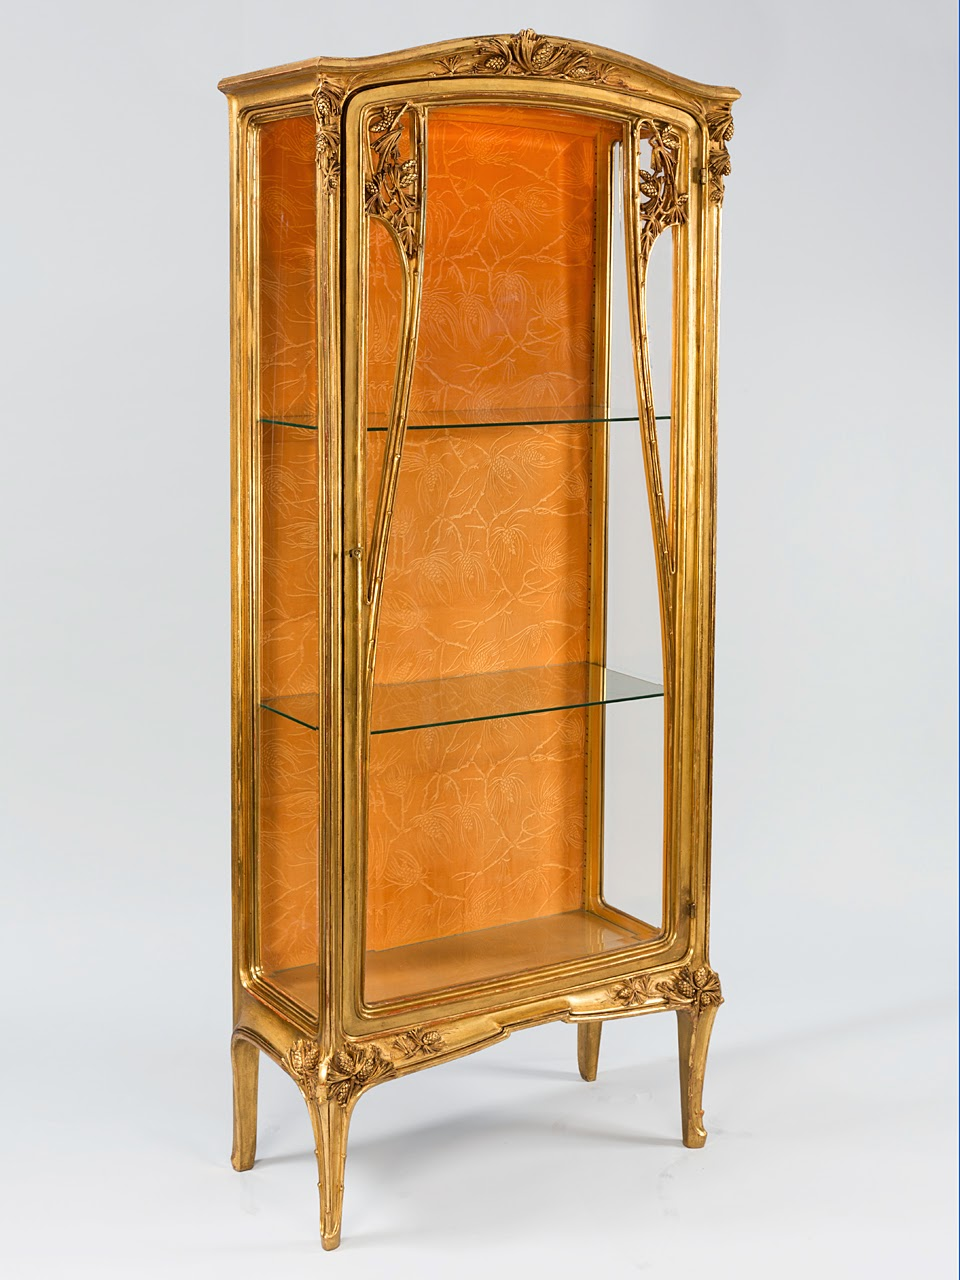 French Art Nouveau gilwood and glass vitrine by Majorelle